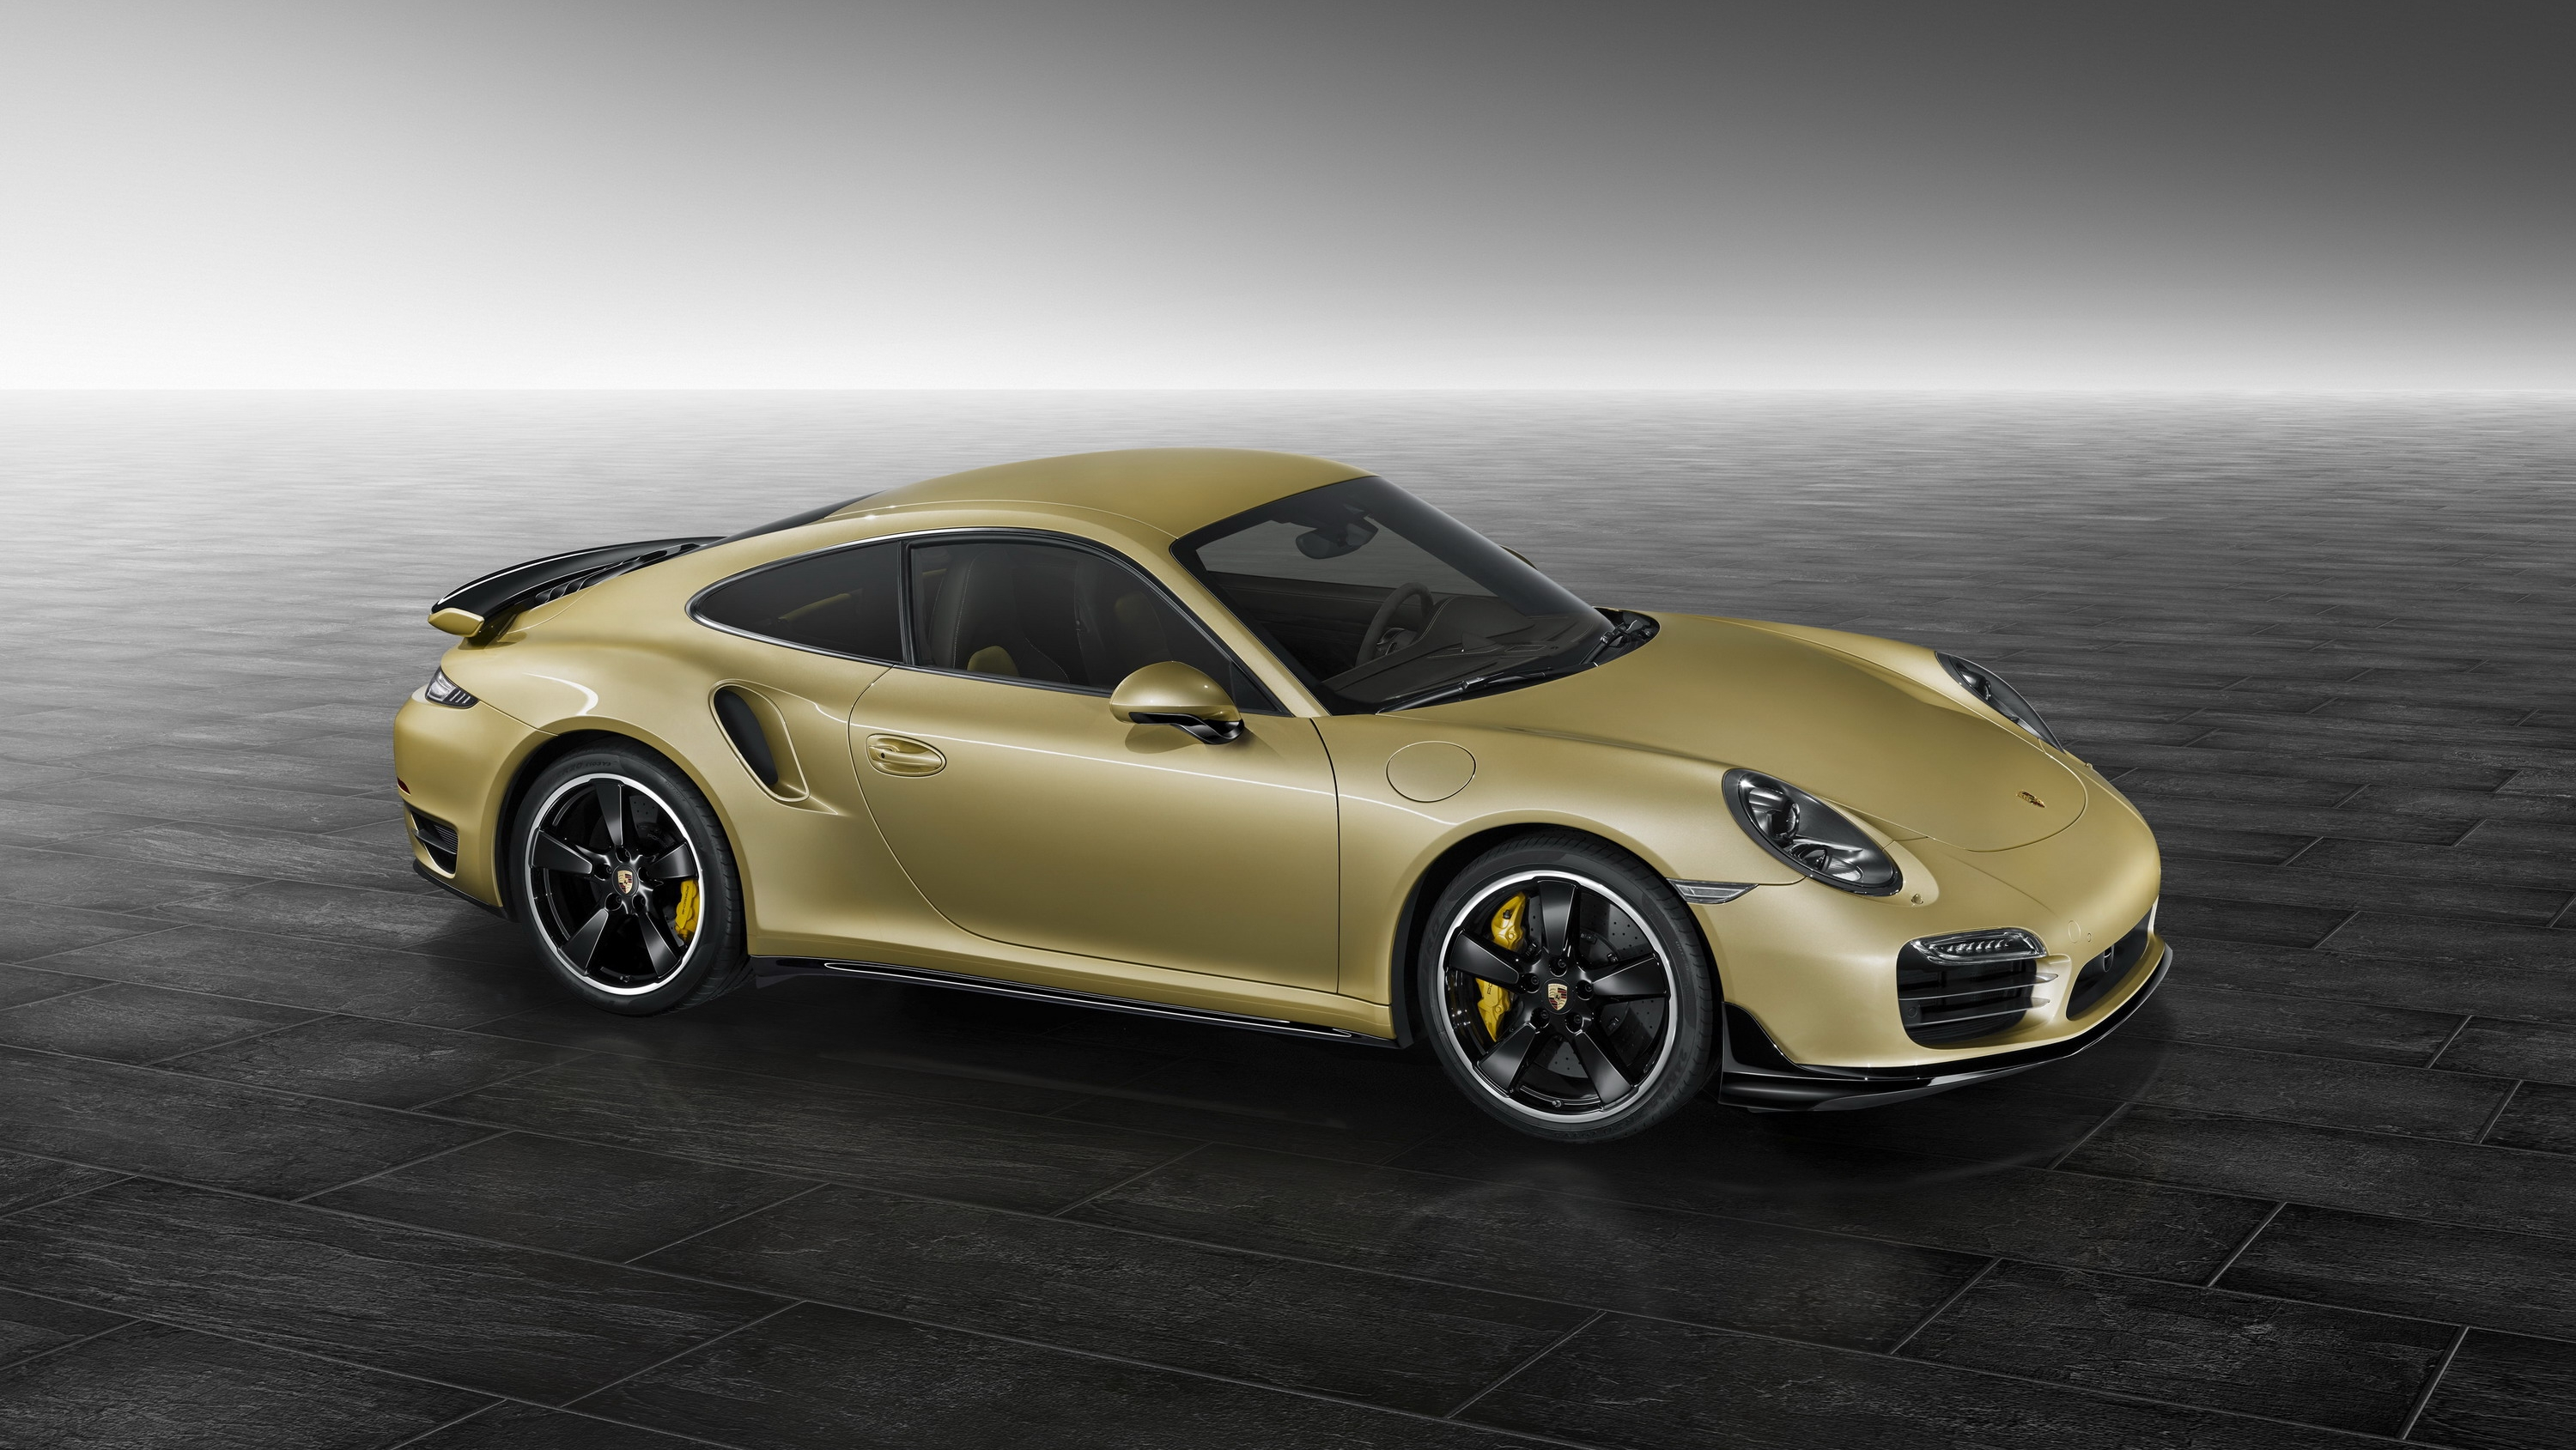 2015 porsche 911 turbo and turbo s aerokit top speed. Black Bedroom Furniture Sets. Home Design Ideas